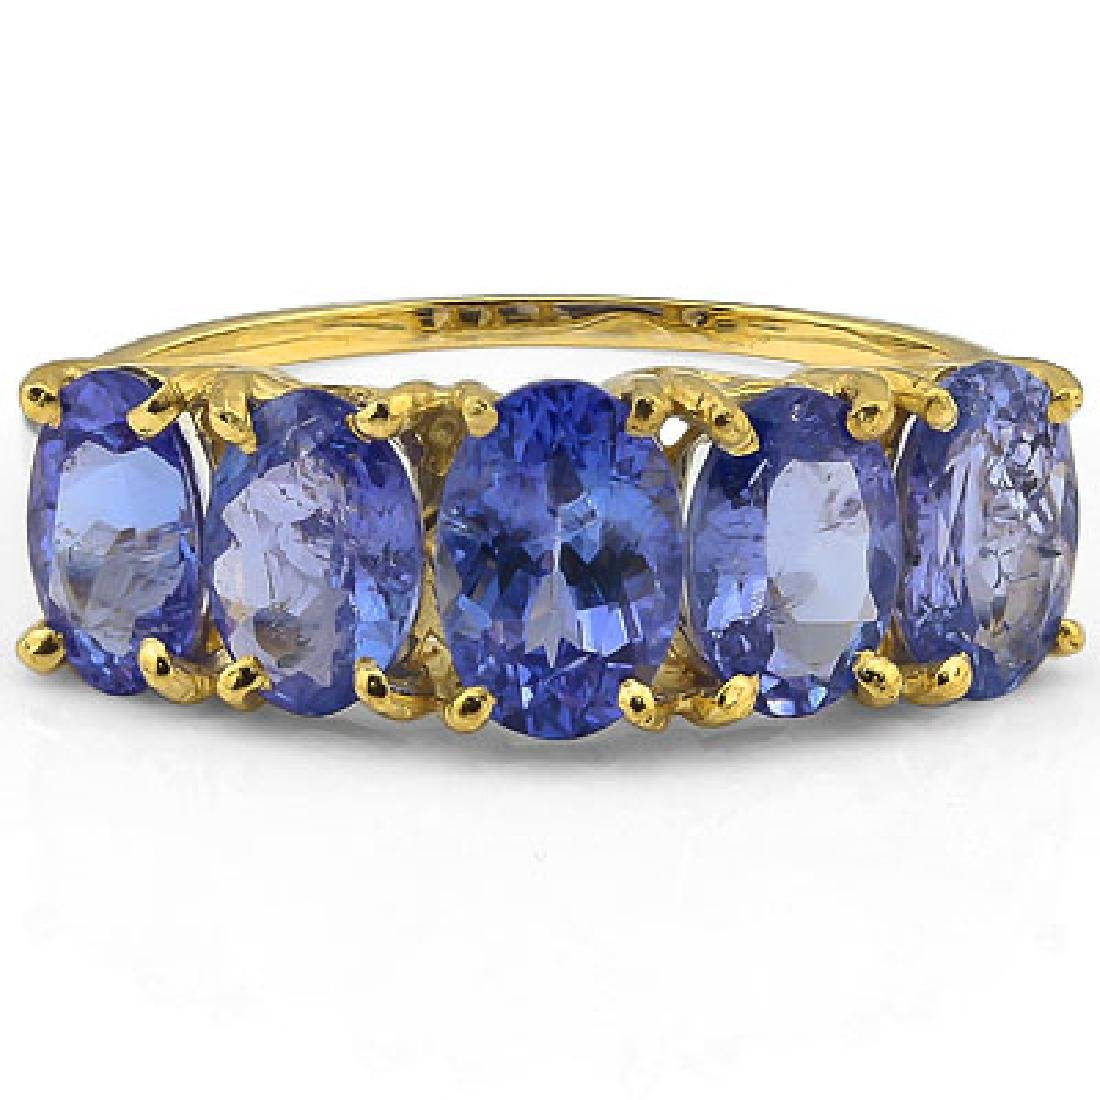 ELEGANT 10K GOLD GENUINE 2CT TANZANITE GEMSTONE RG